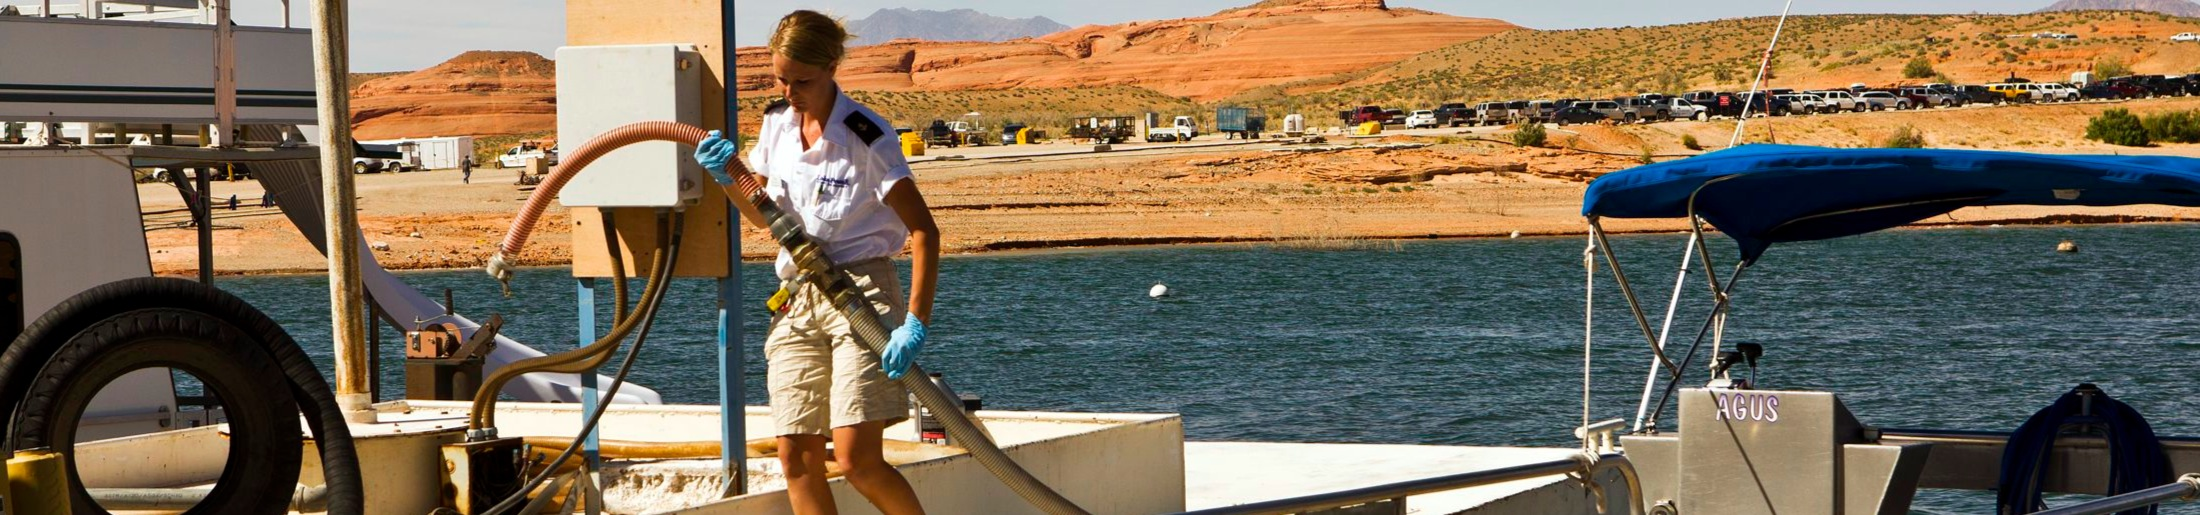 Pump Out Marina Service on Lake Powell